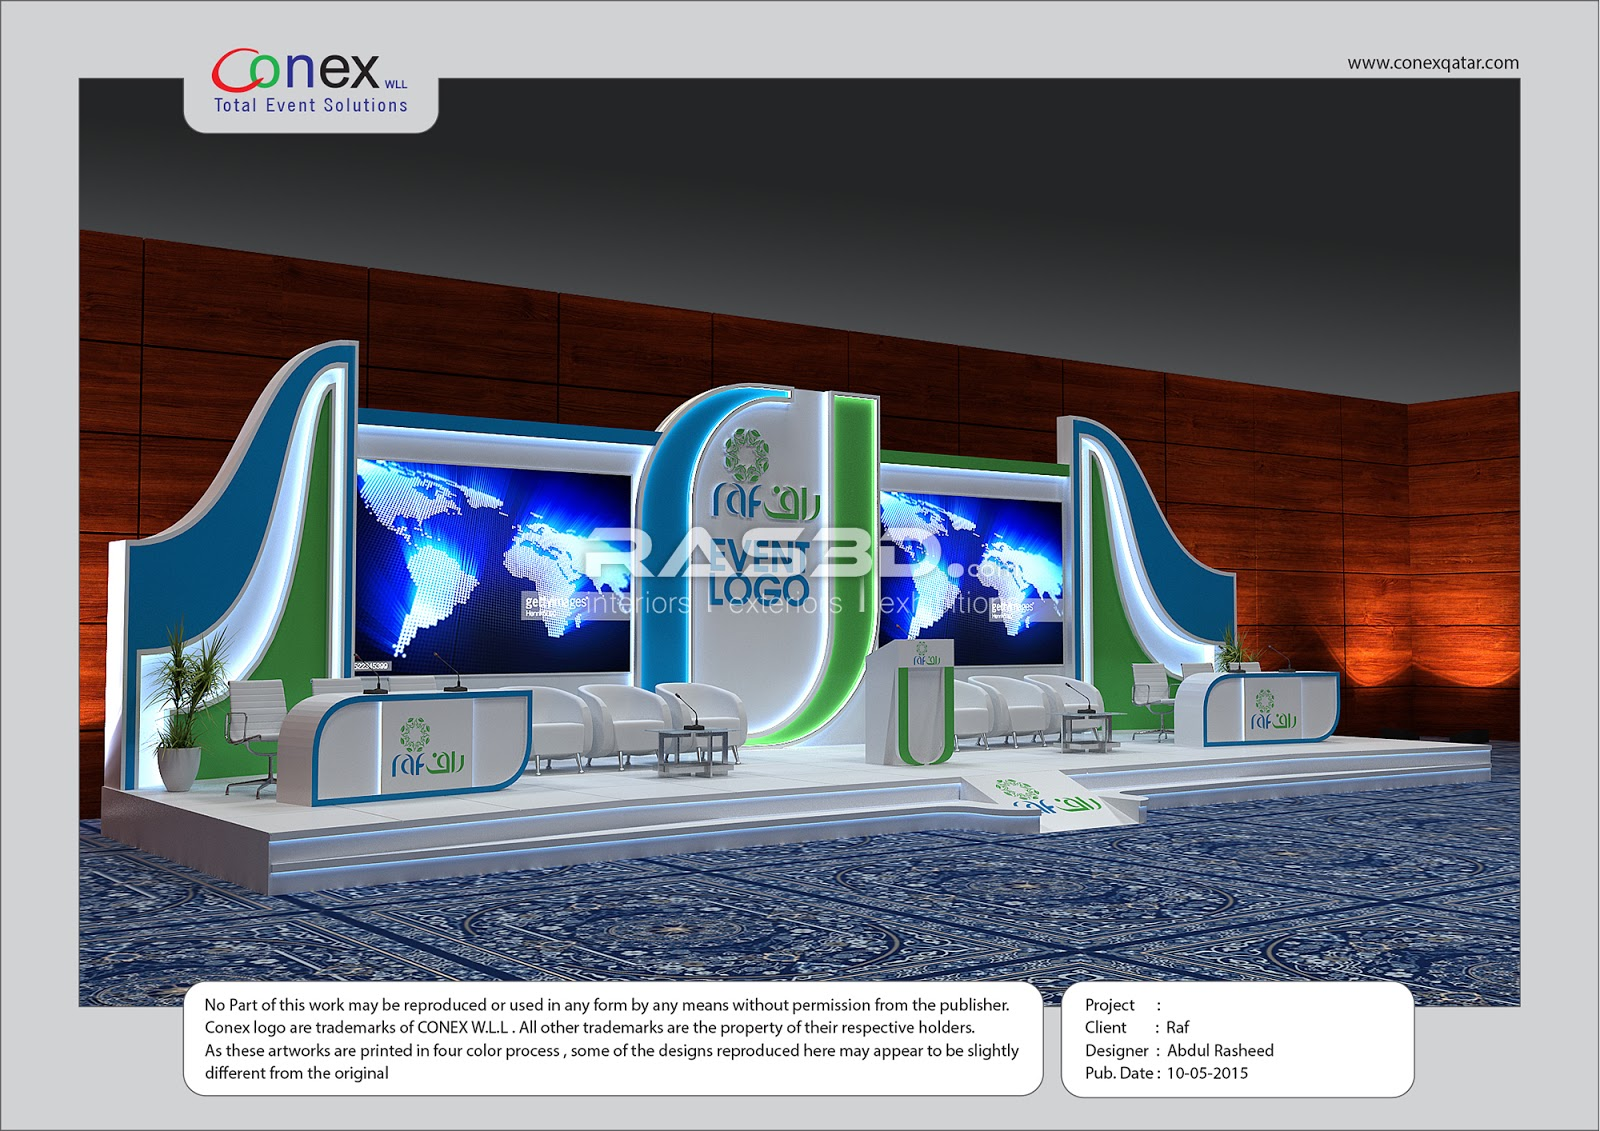 Exhibition Stand Design Mockup Free Download